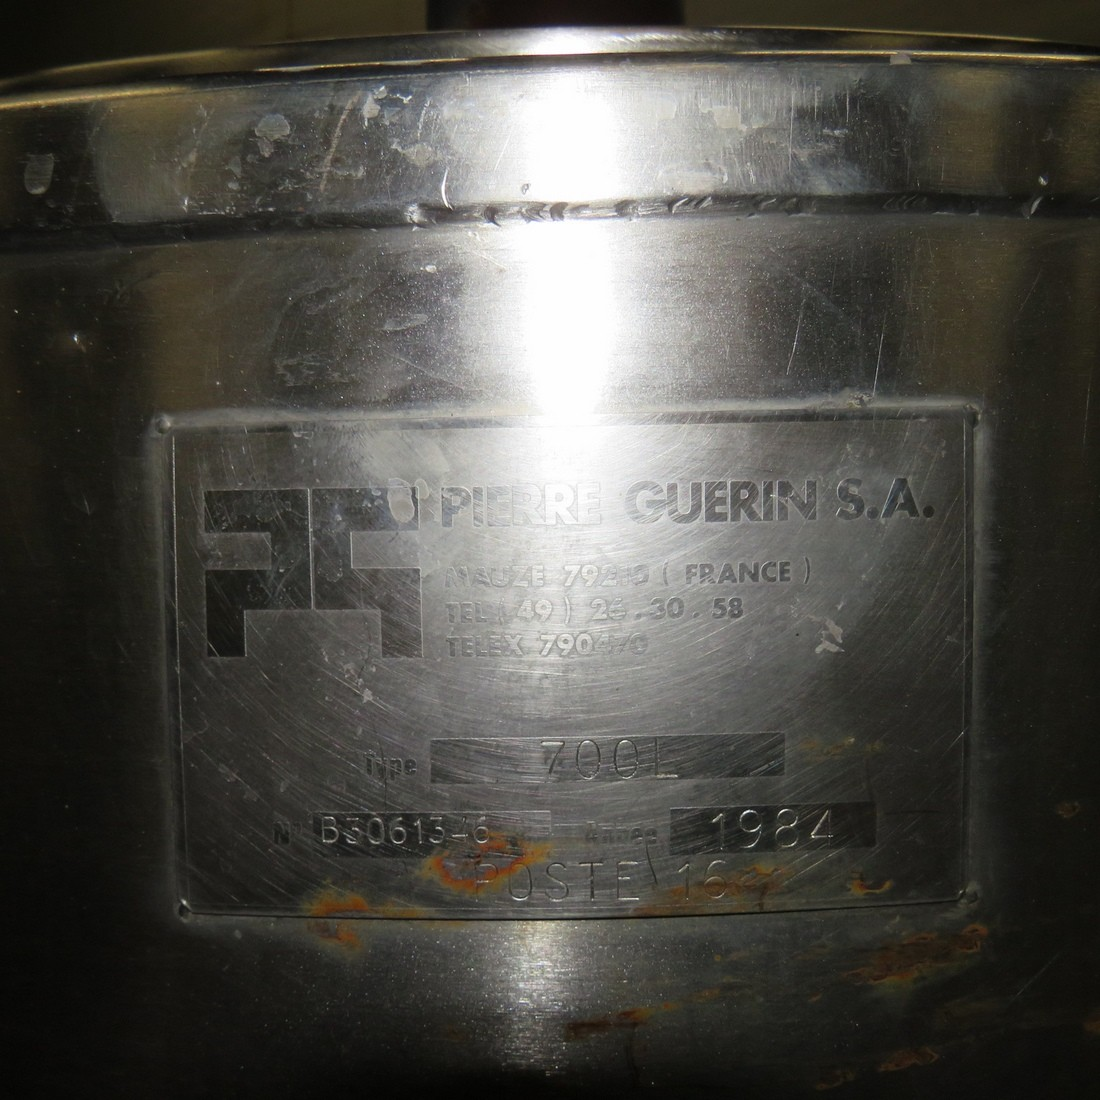 R6MA6139 Stainless steel PIERRE GUERIN mixing tank capacity 700 litres